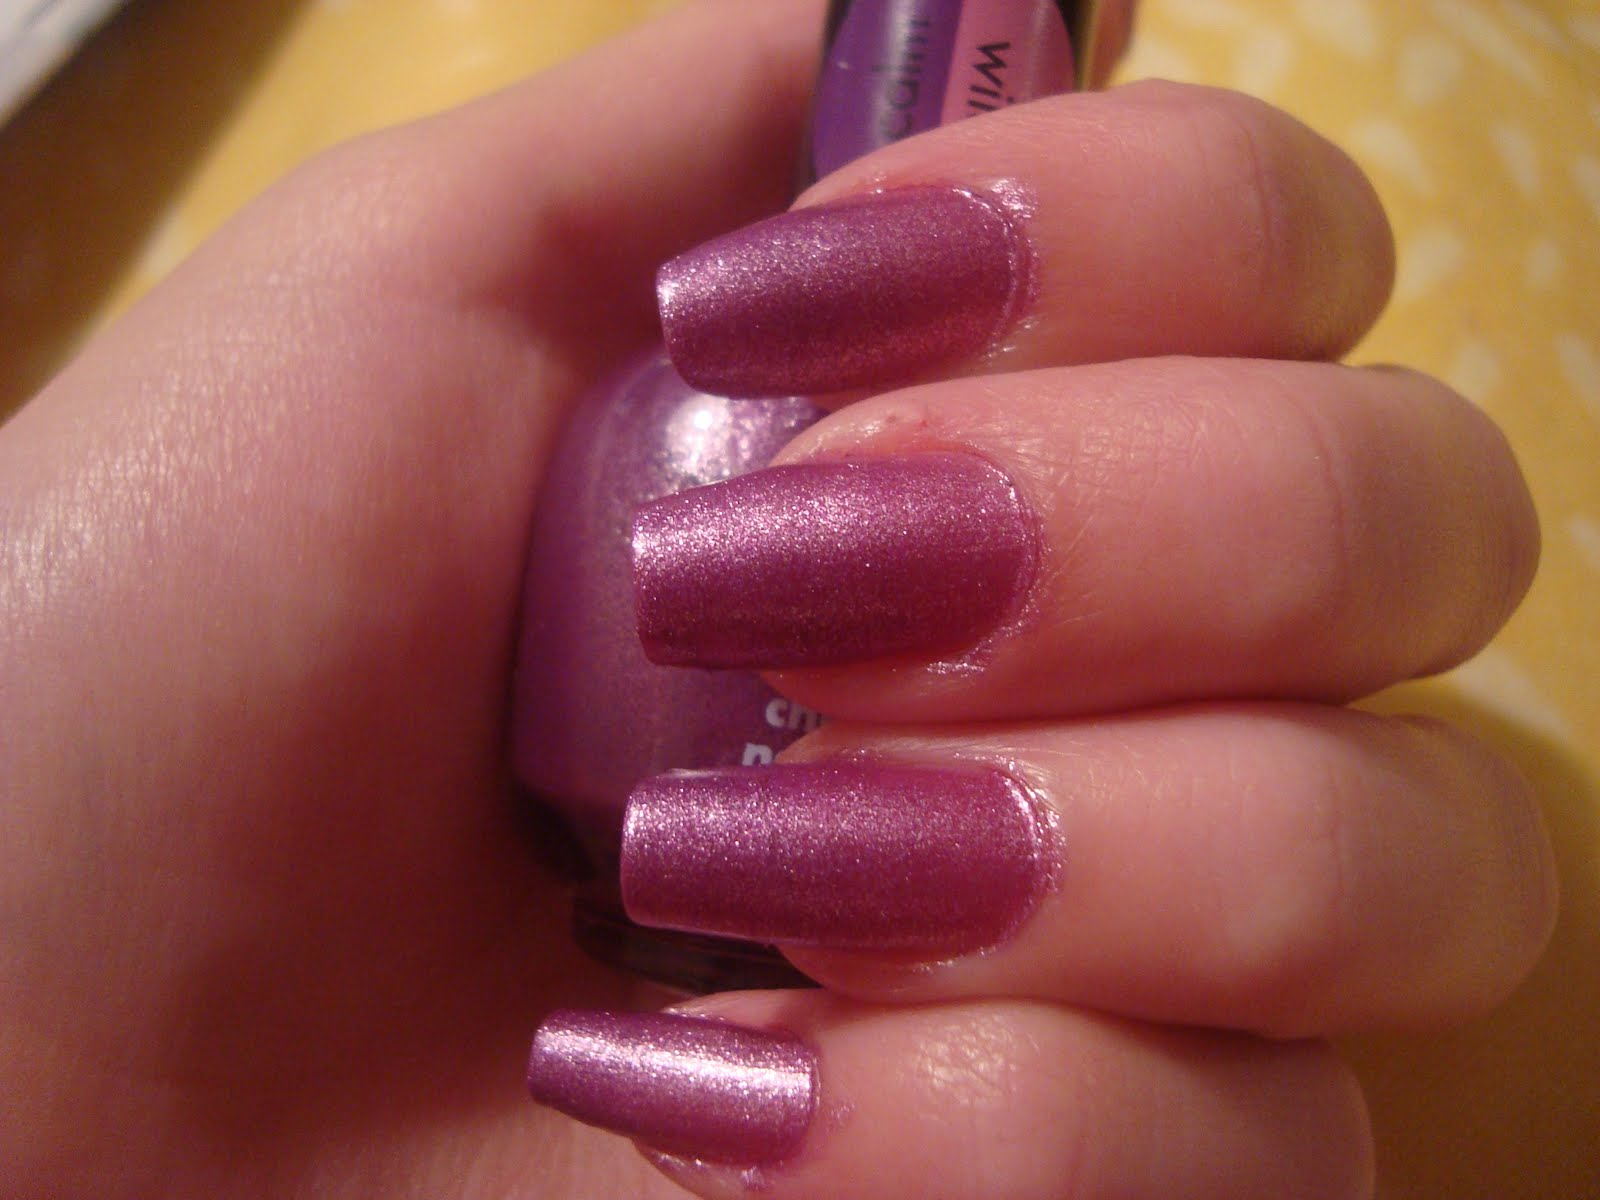 Try acrylic nails to get your nails still look horrible